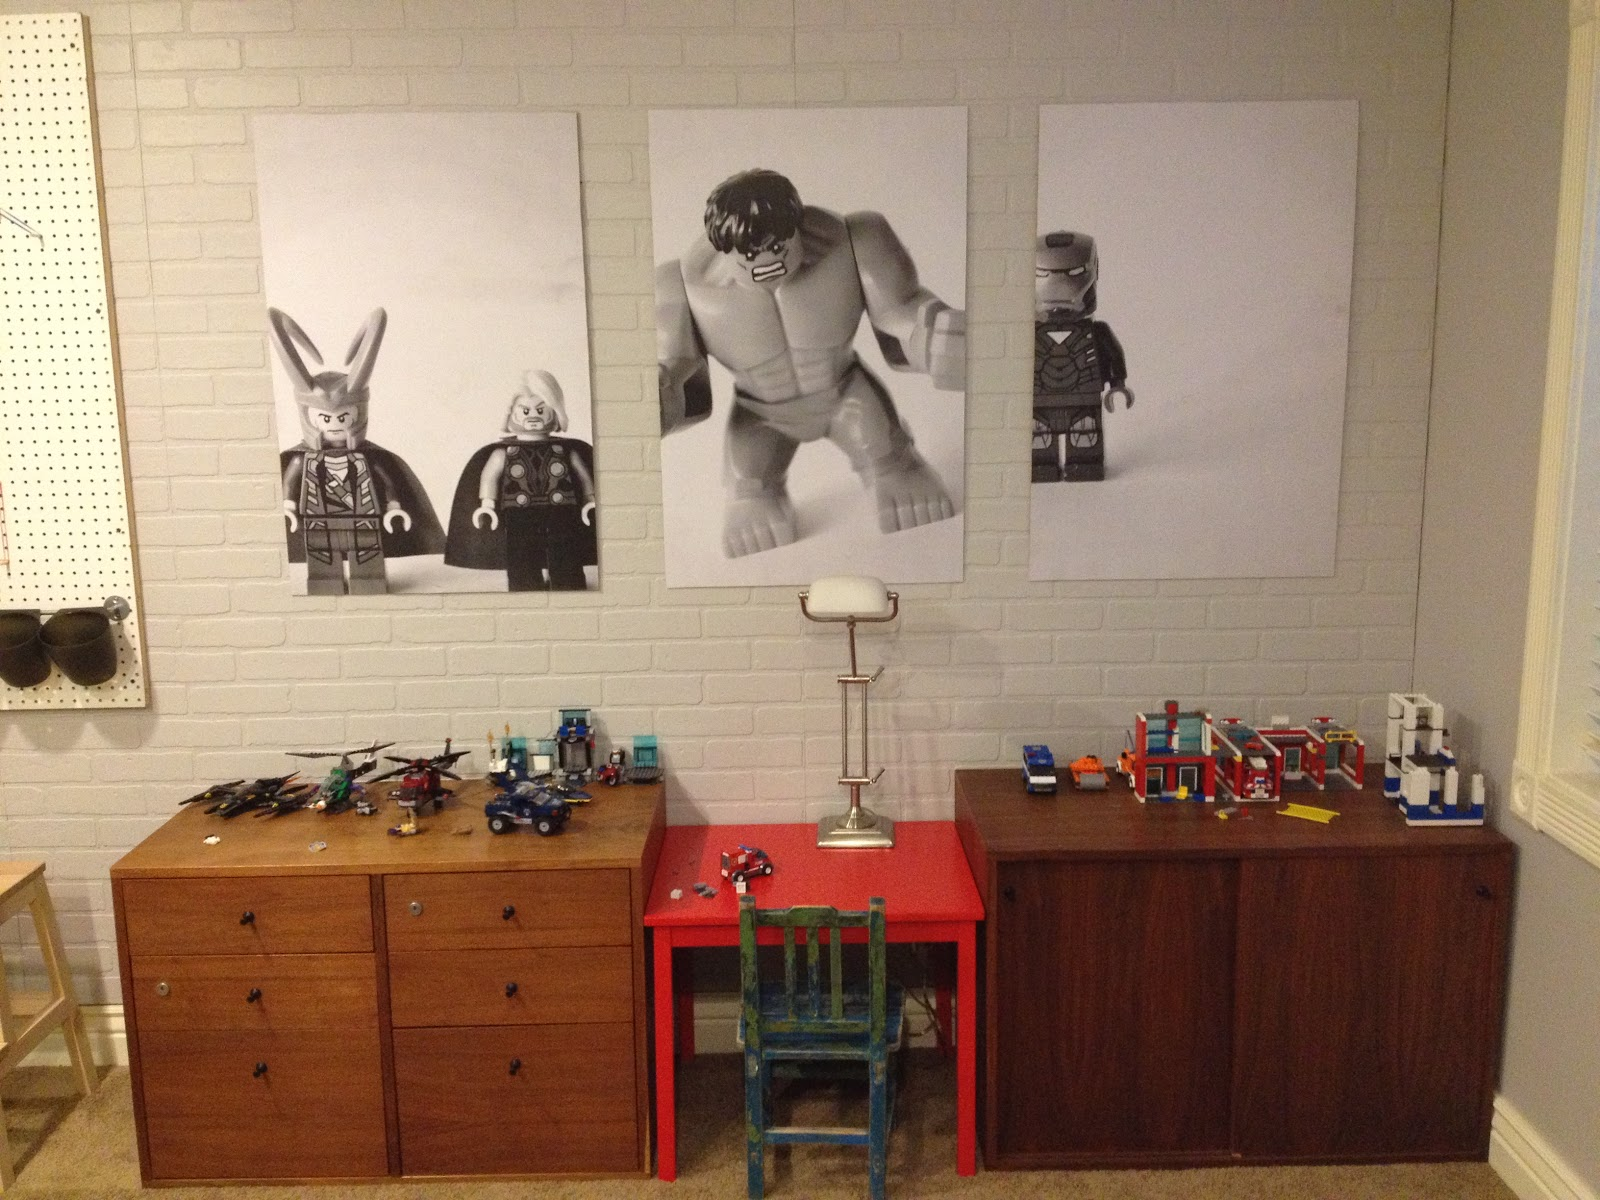 DIY favorite toy posters